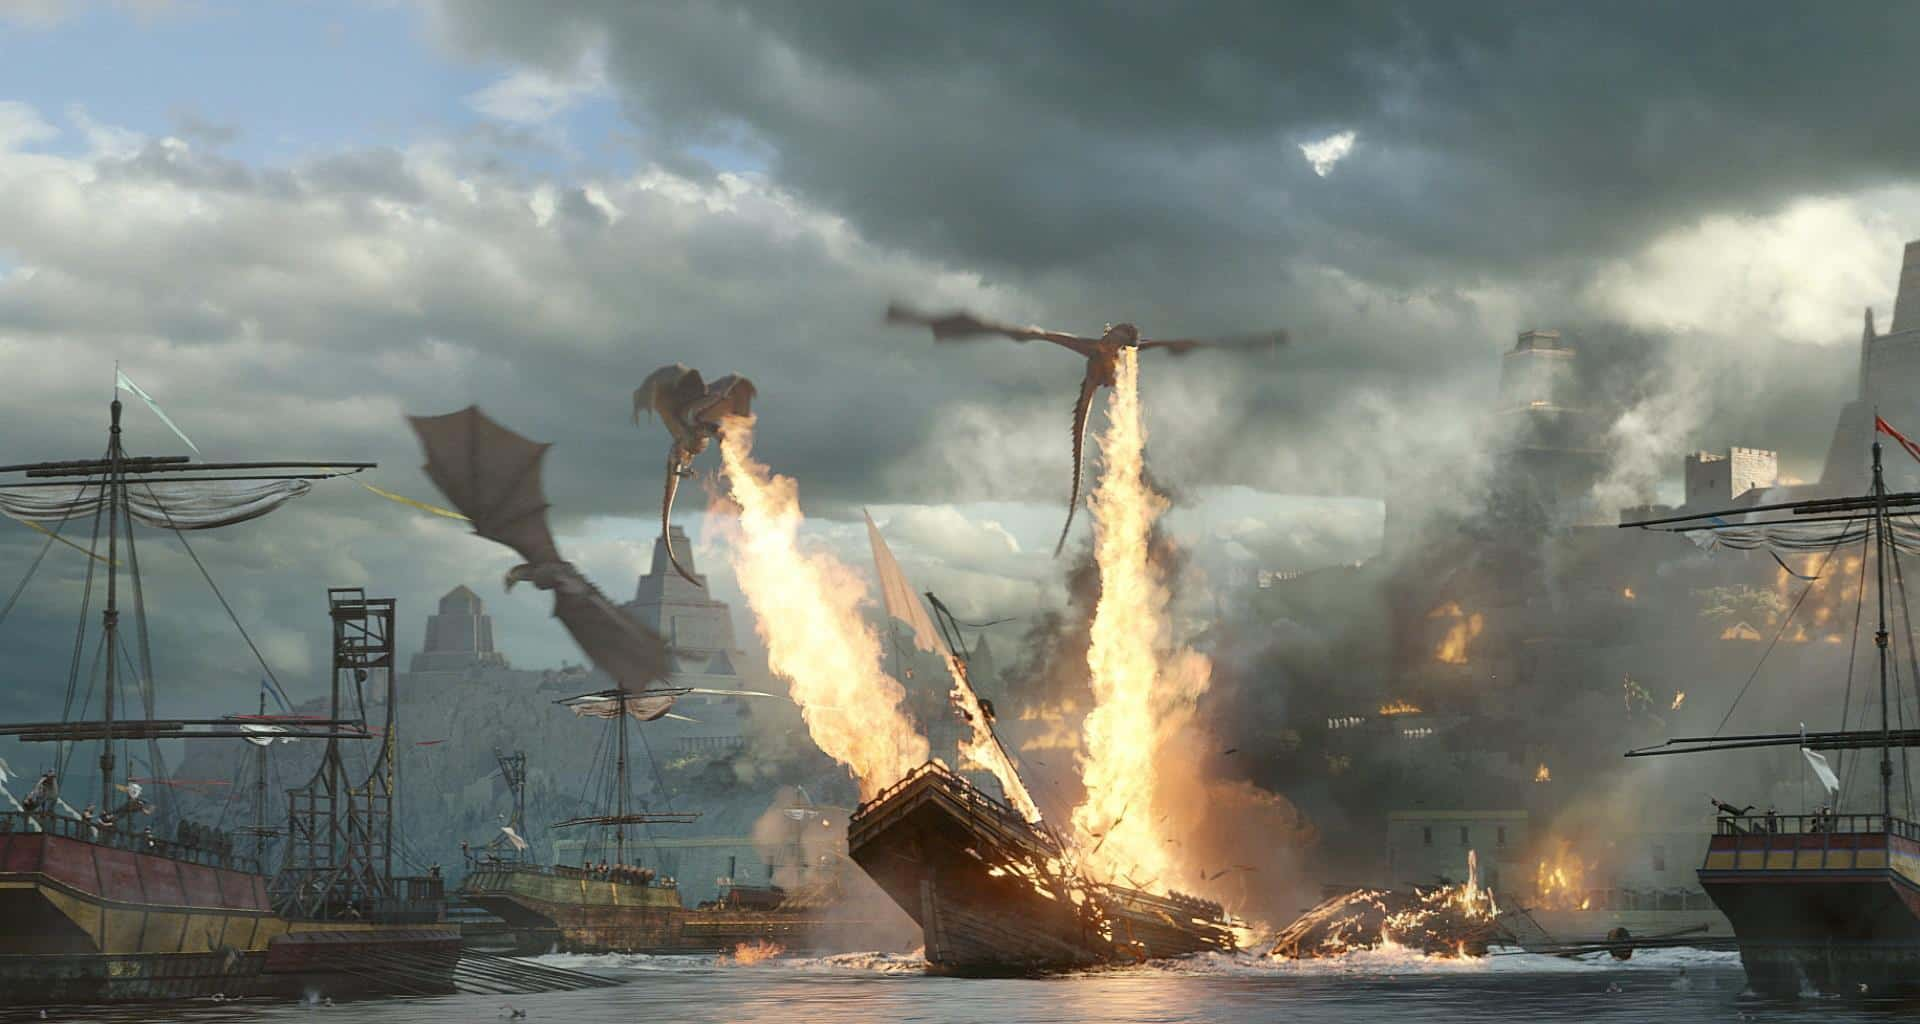 Game Of Thrones' Amazing Battle Sequence, But Without All